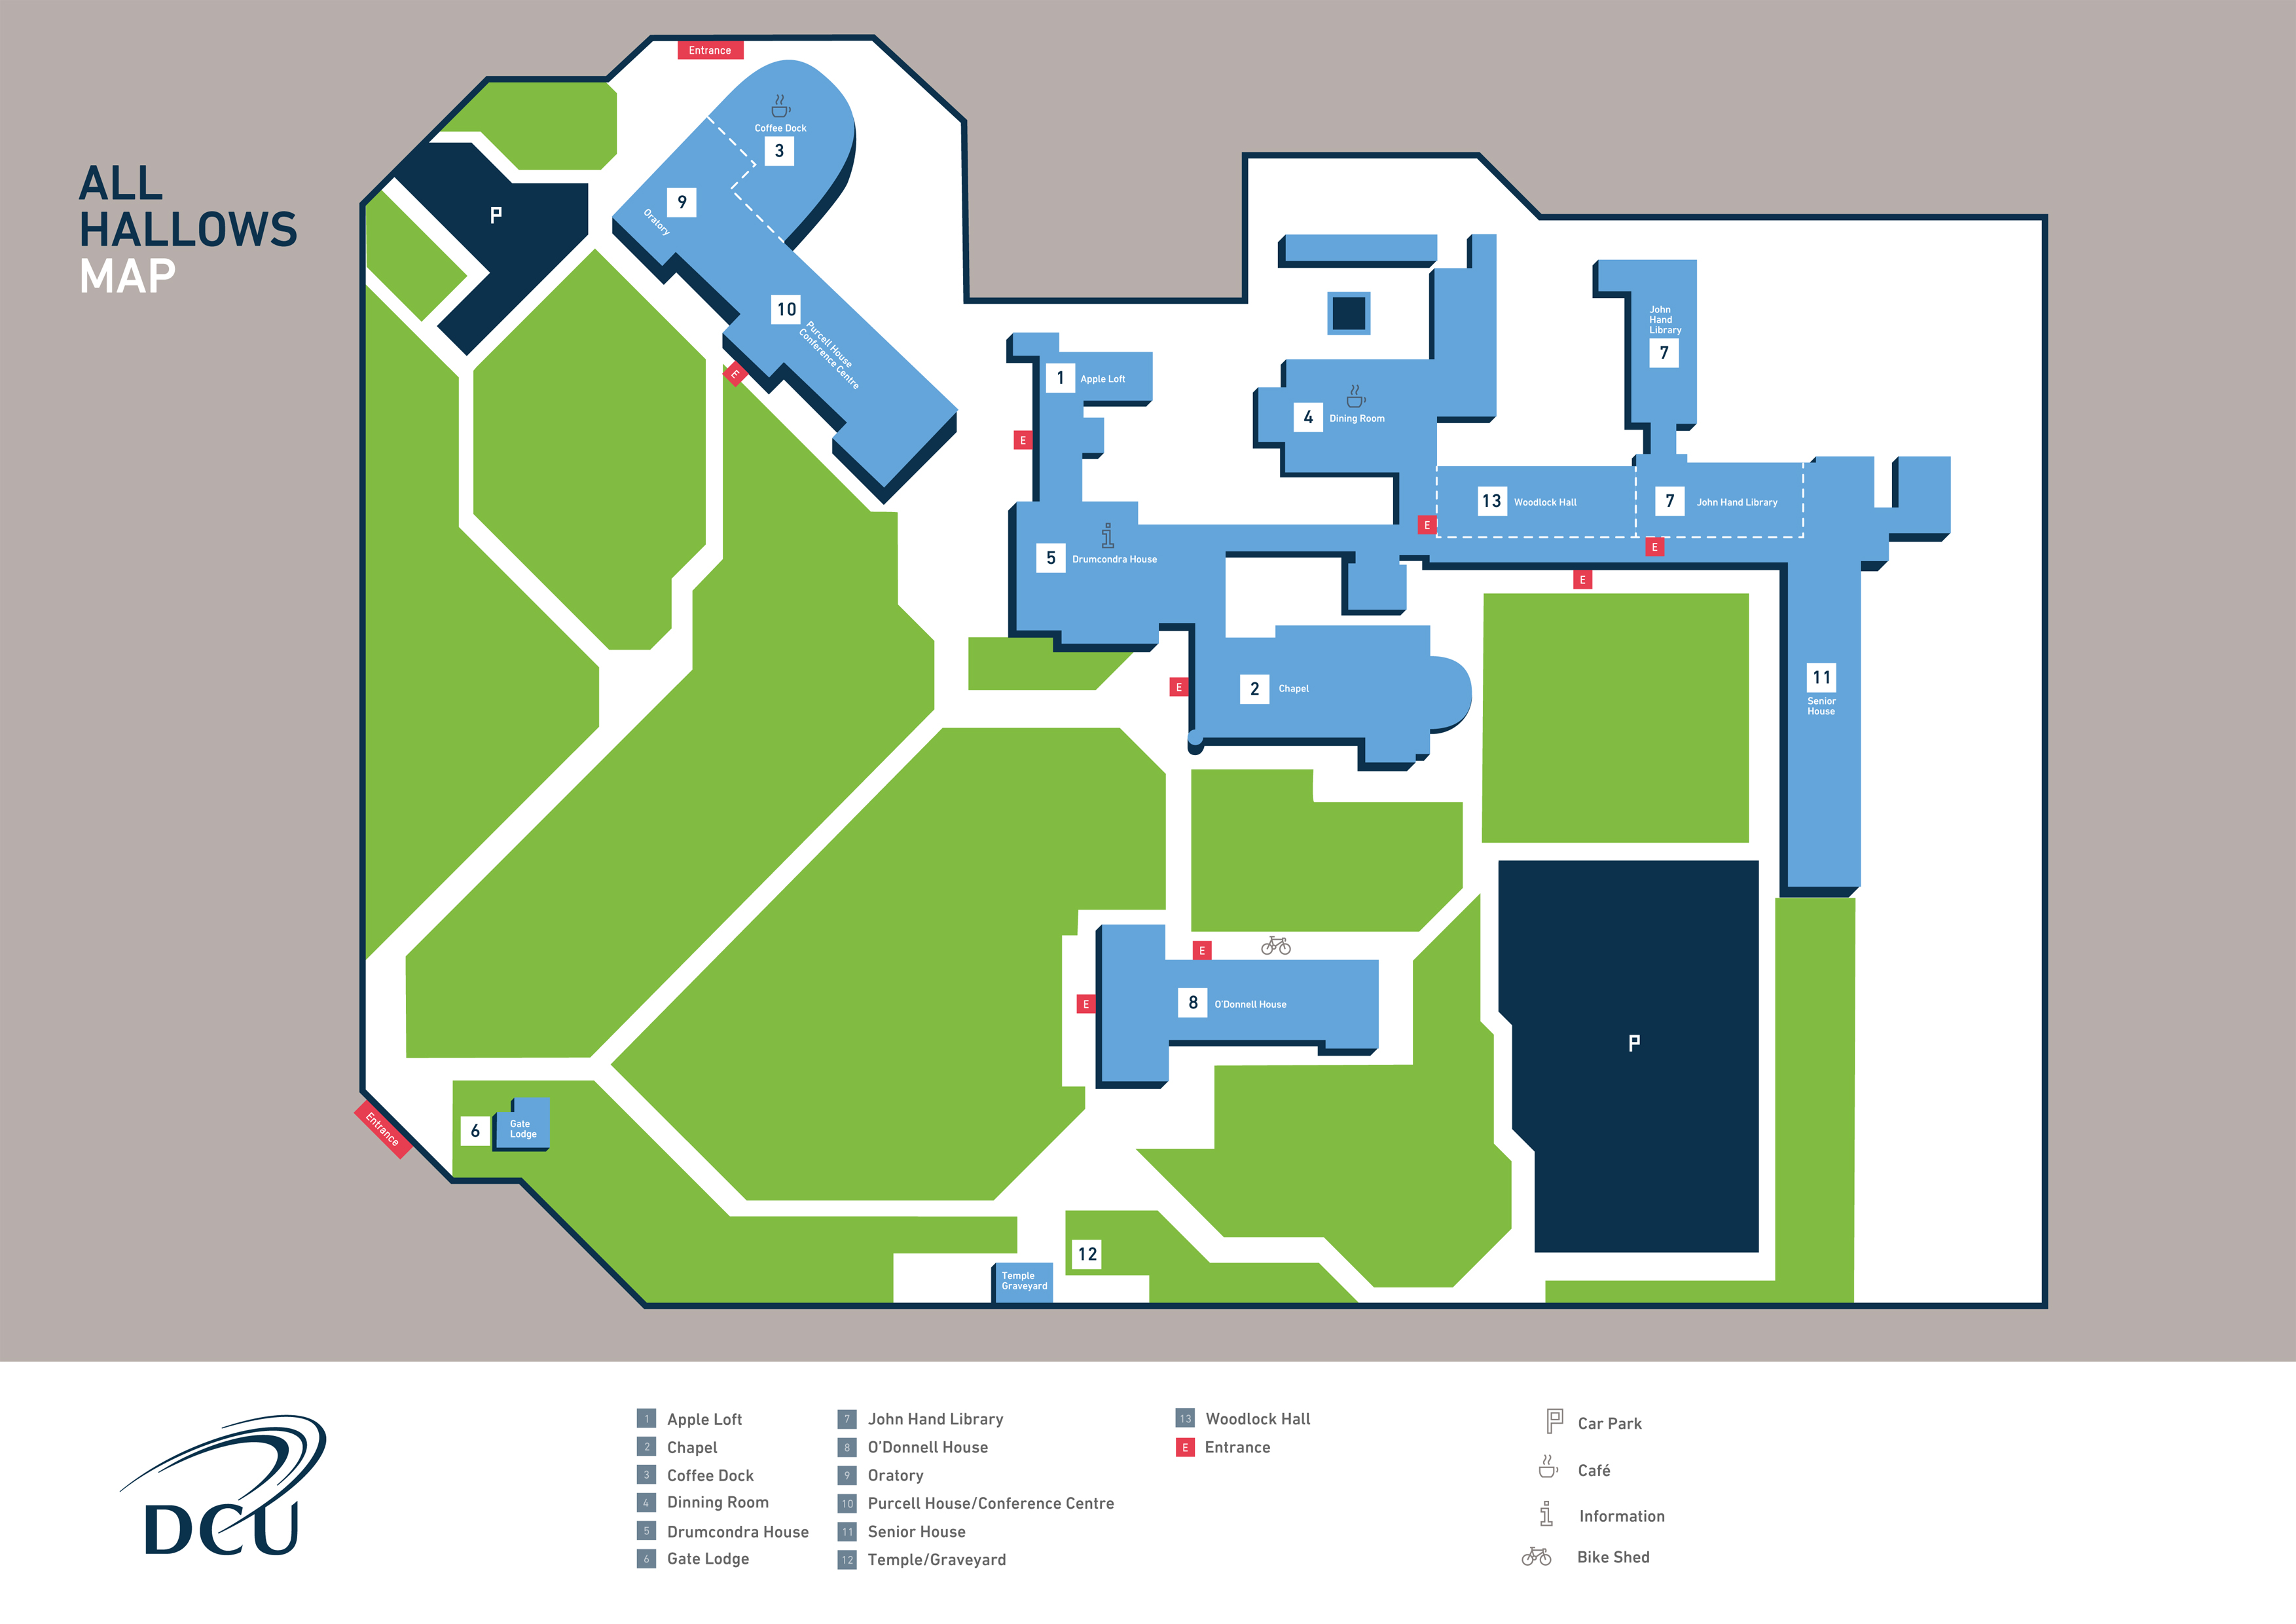 Rogers State University Campus Map.Information Dcu Campus Map Dcu